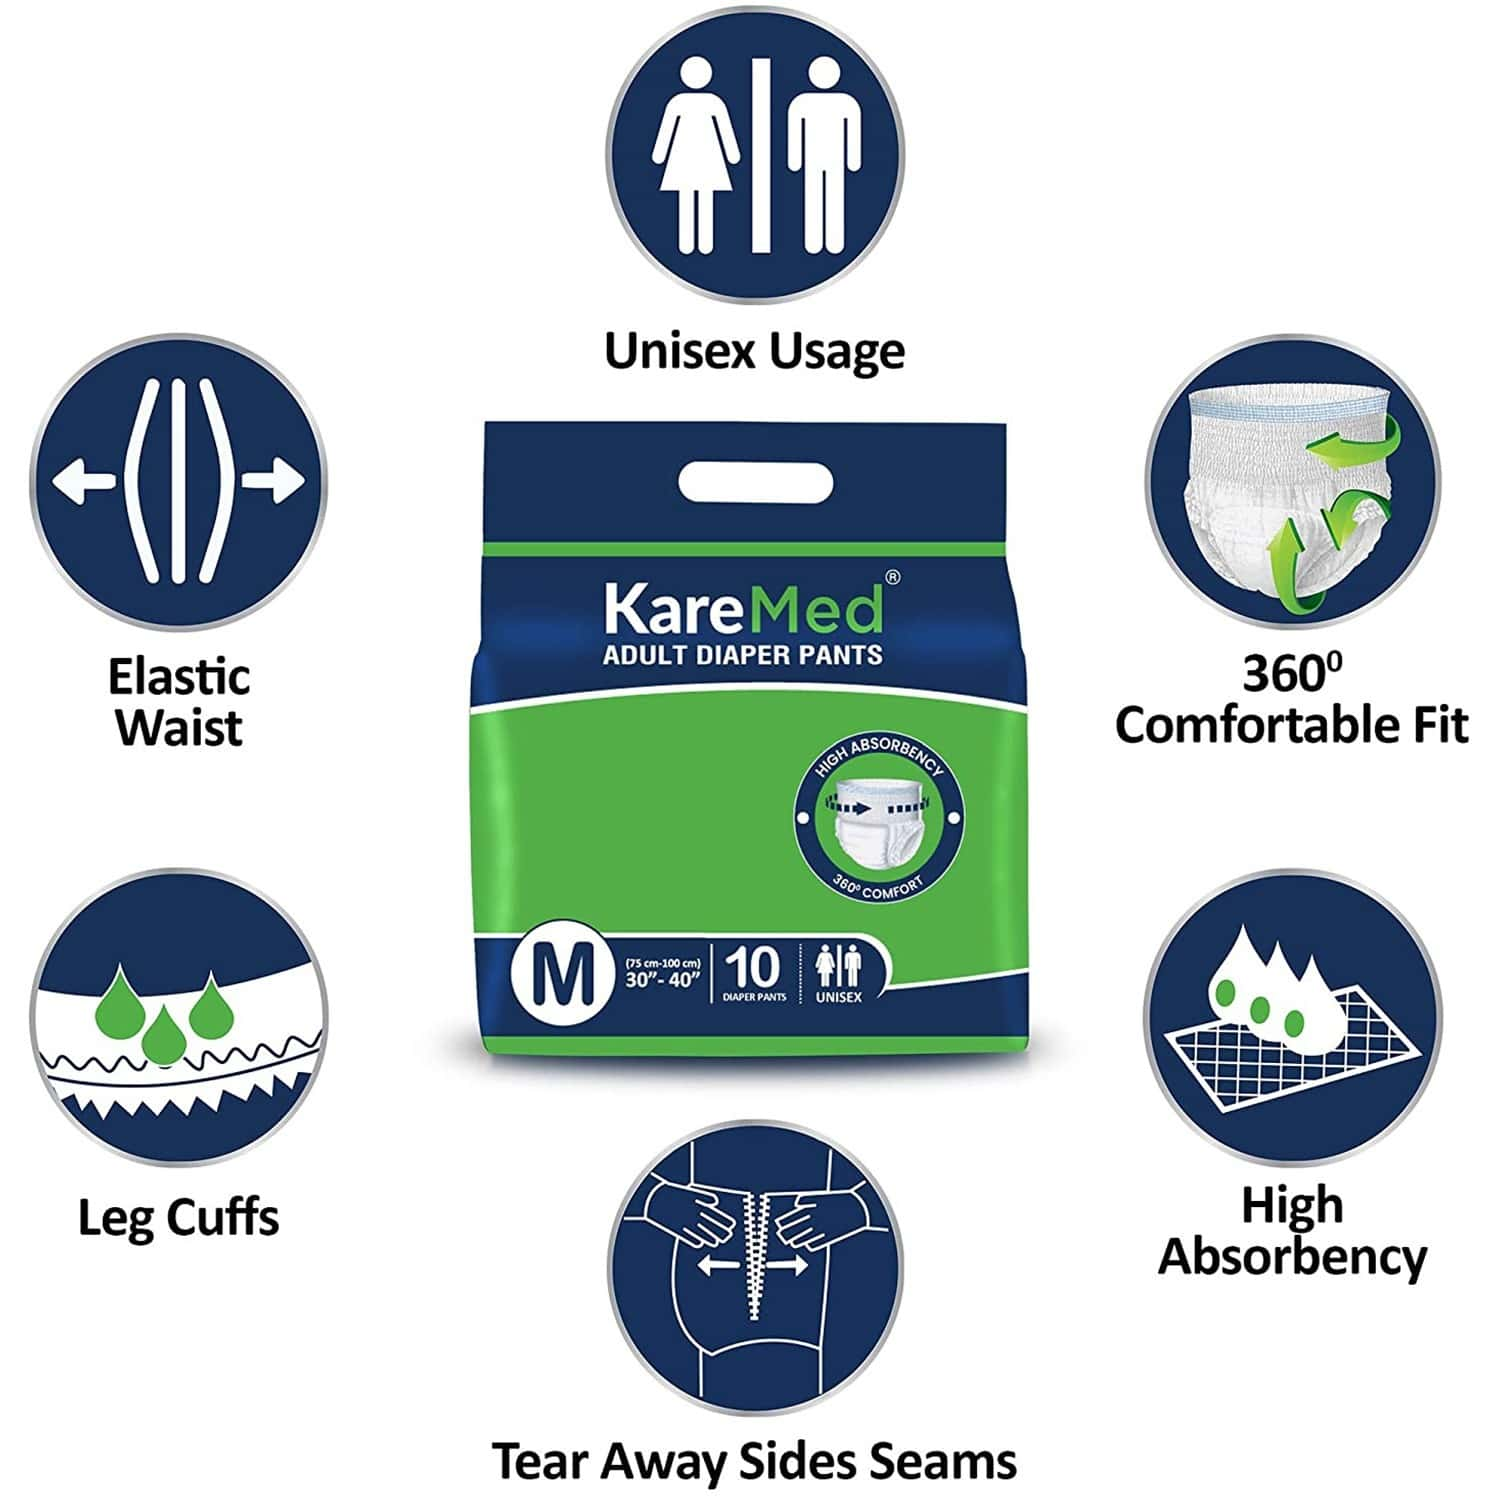 Karemed Adult Diaper Pants For Incontinence Medium Waist Size 75-100cm (30-40)pack Of 1 (10 Count)